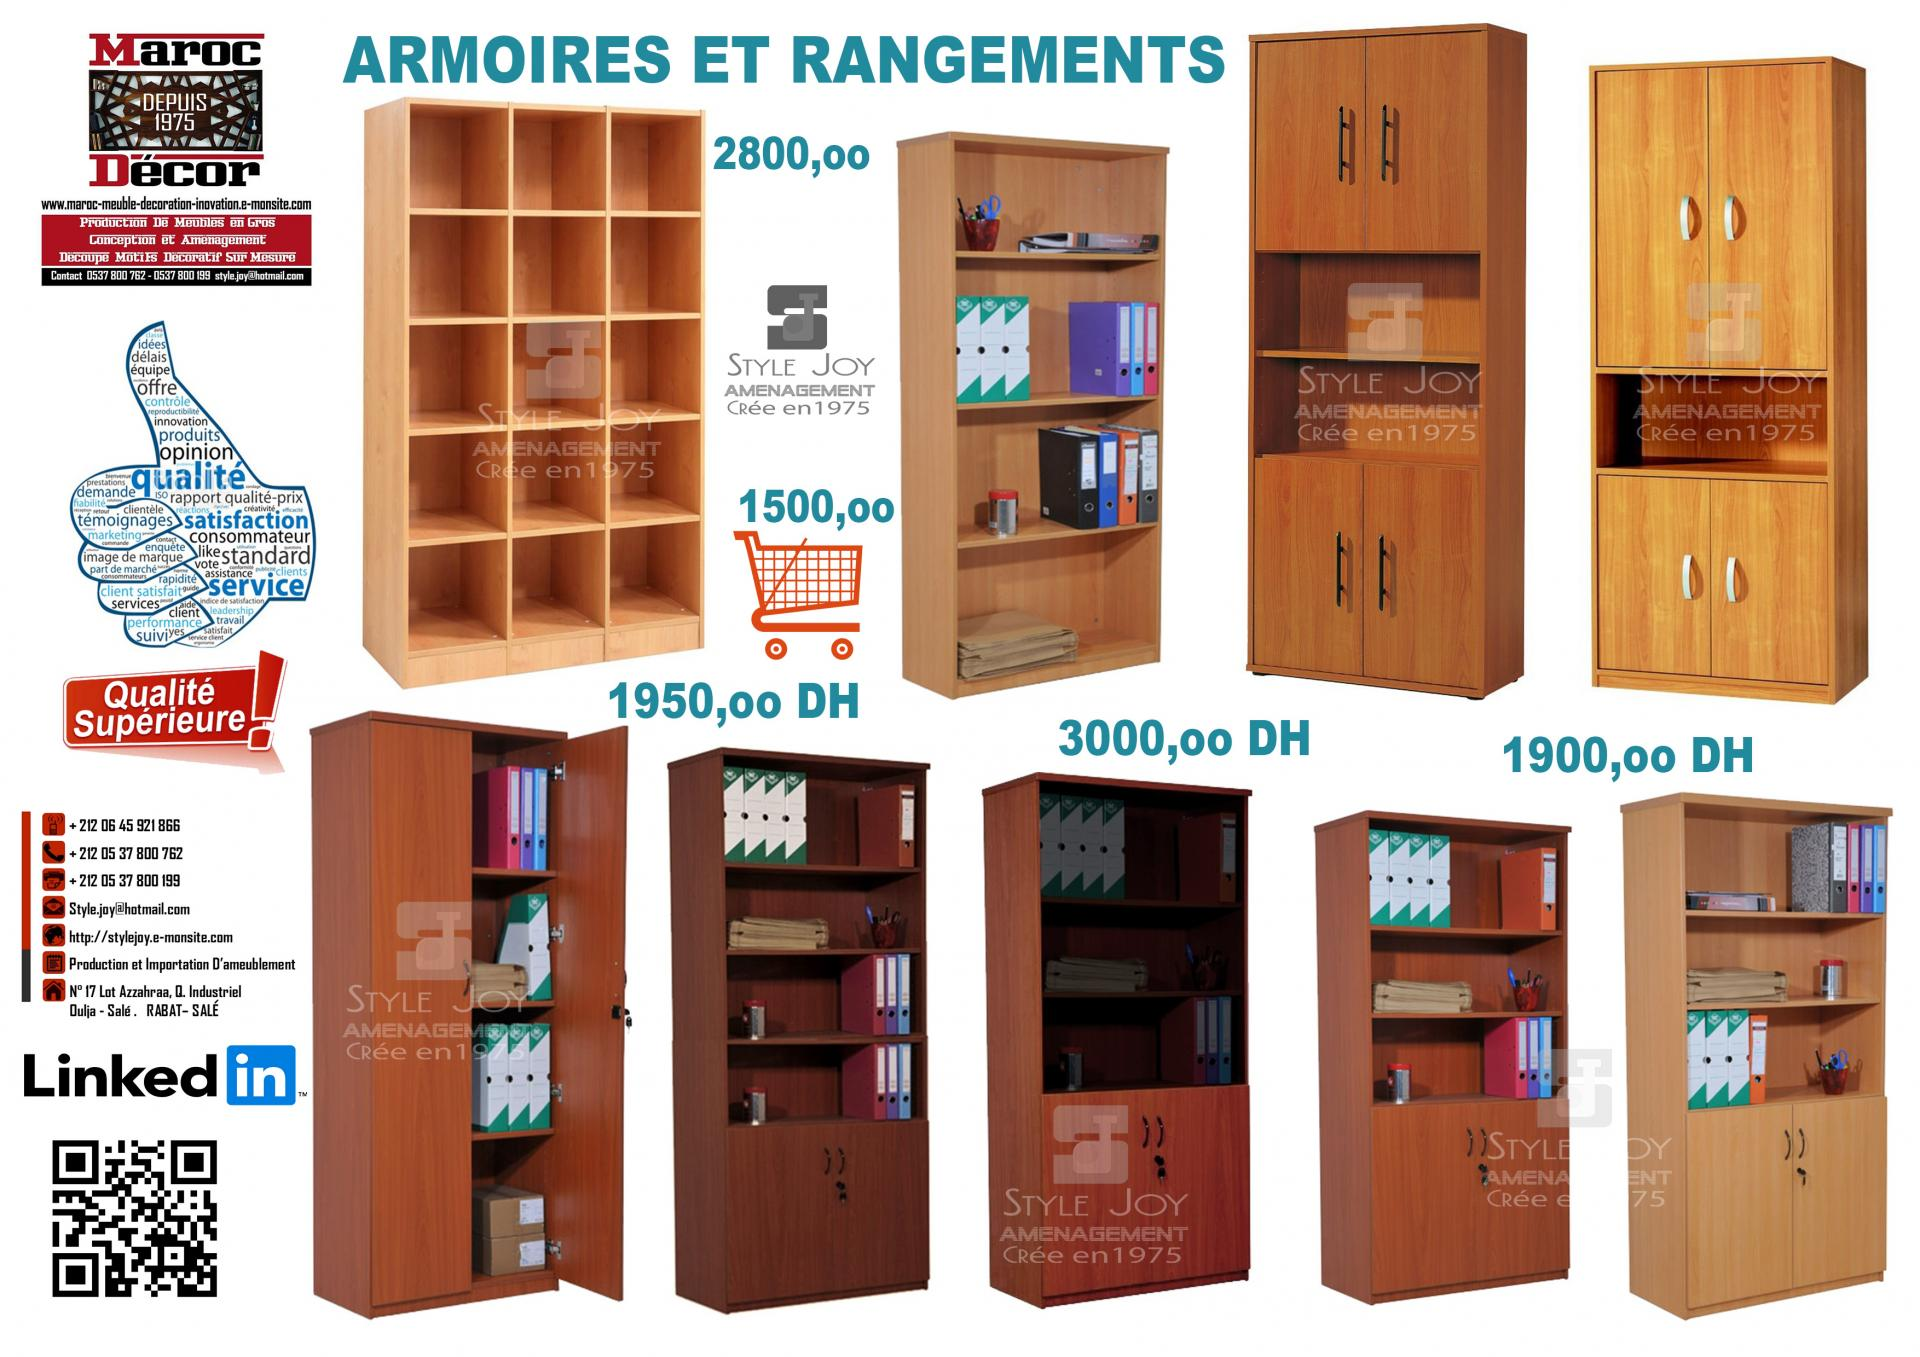 N 1 En Mobilier Bureau Rabat Decoration Design Rabat